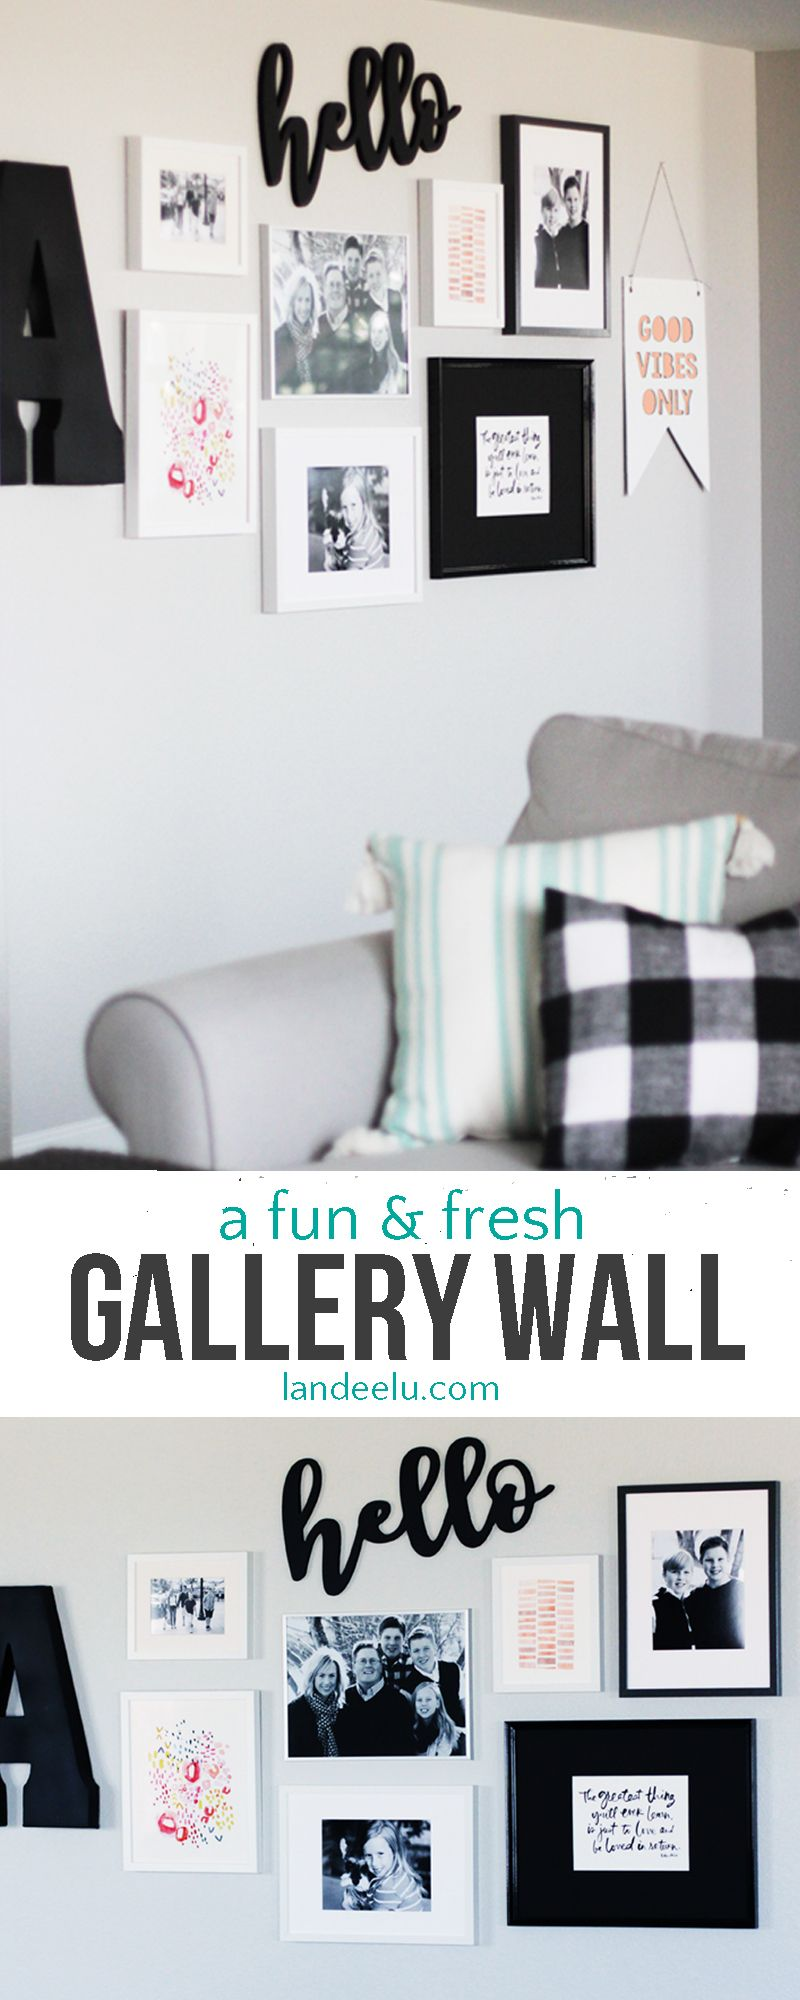 Gallery wall idea fun and fresh gallery wall ideas and layouts